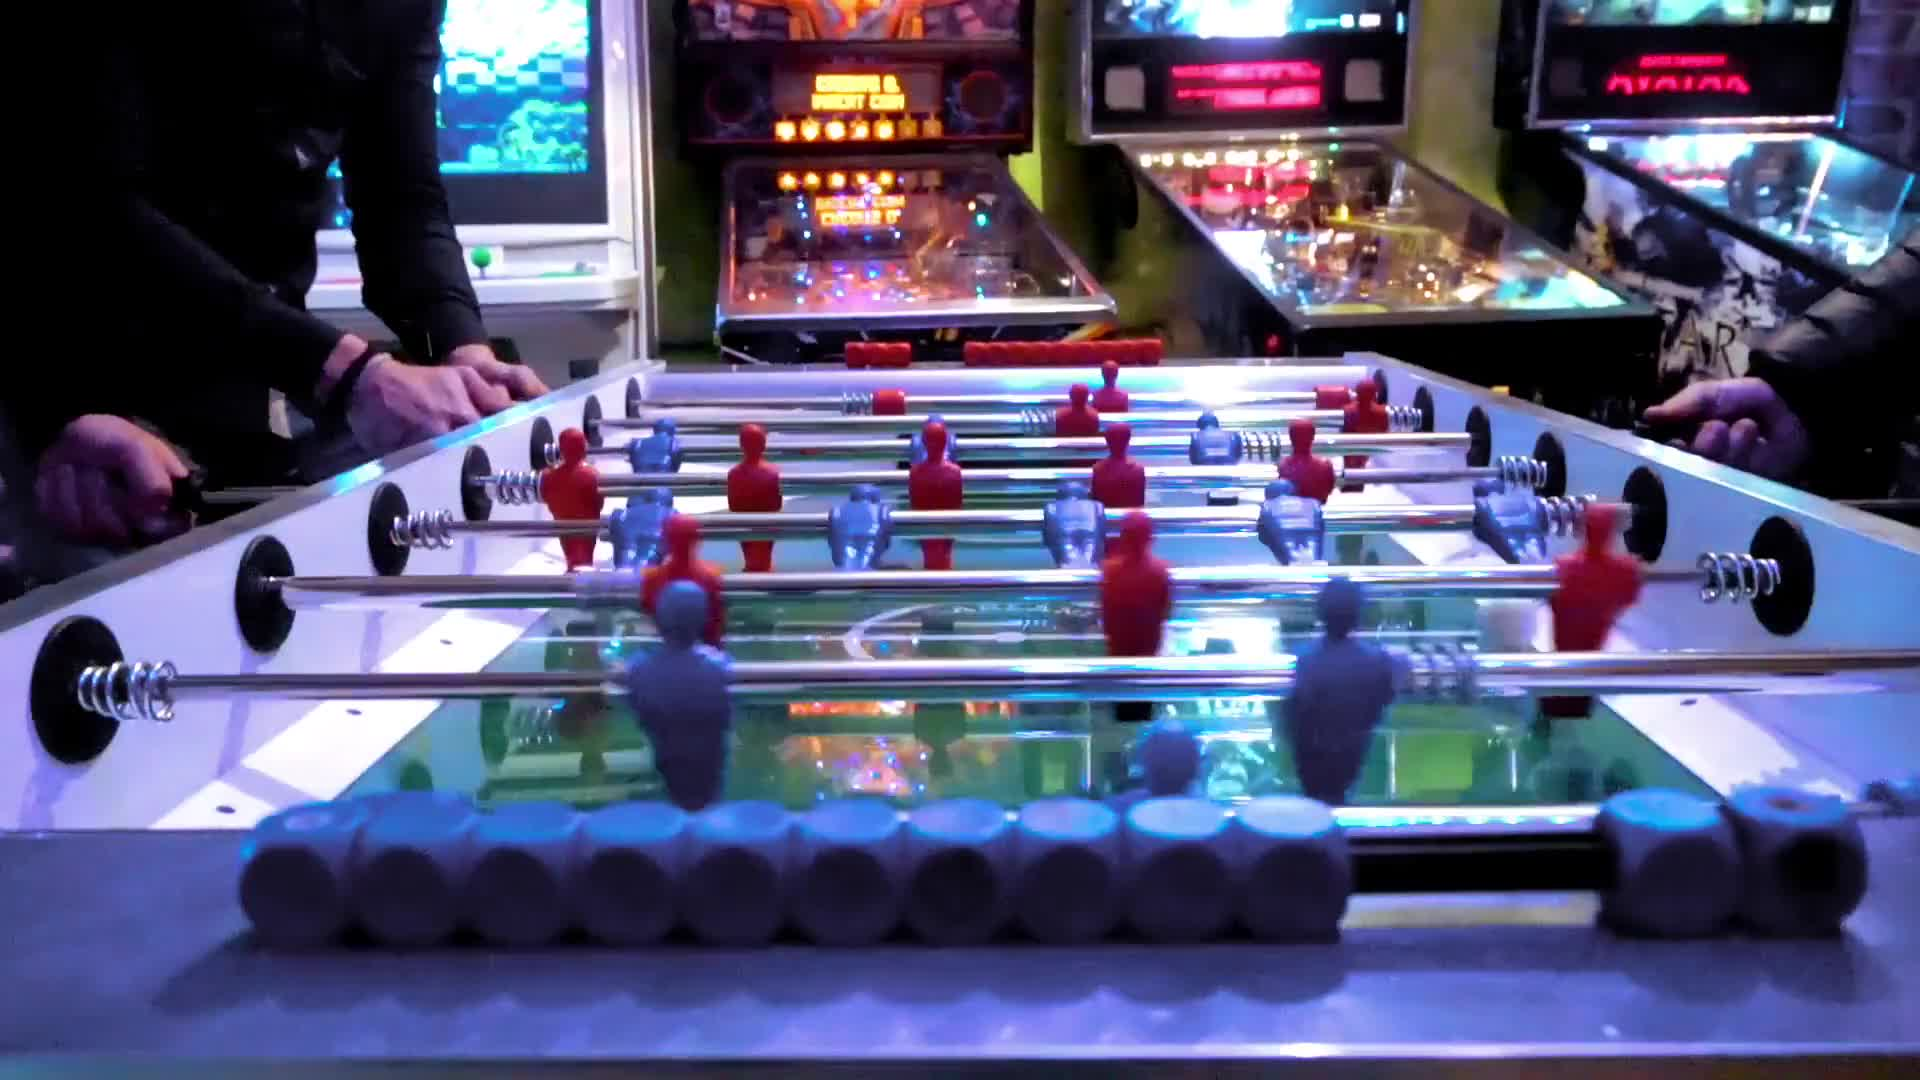 Foosball game fun play entertainment